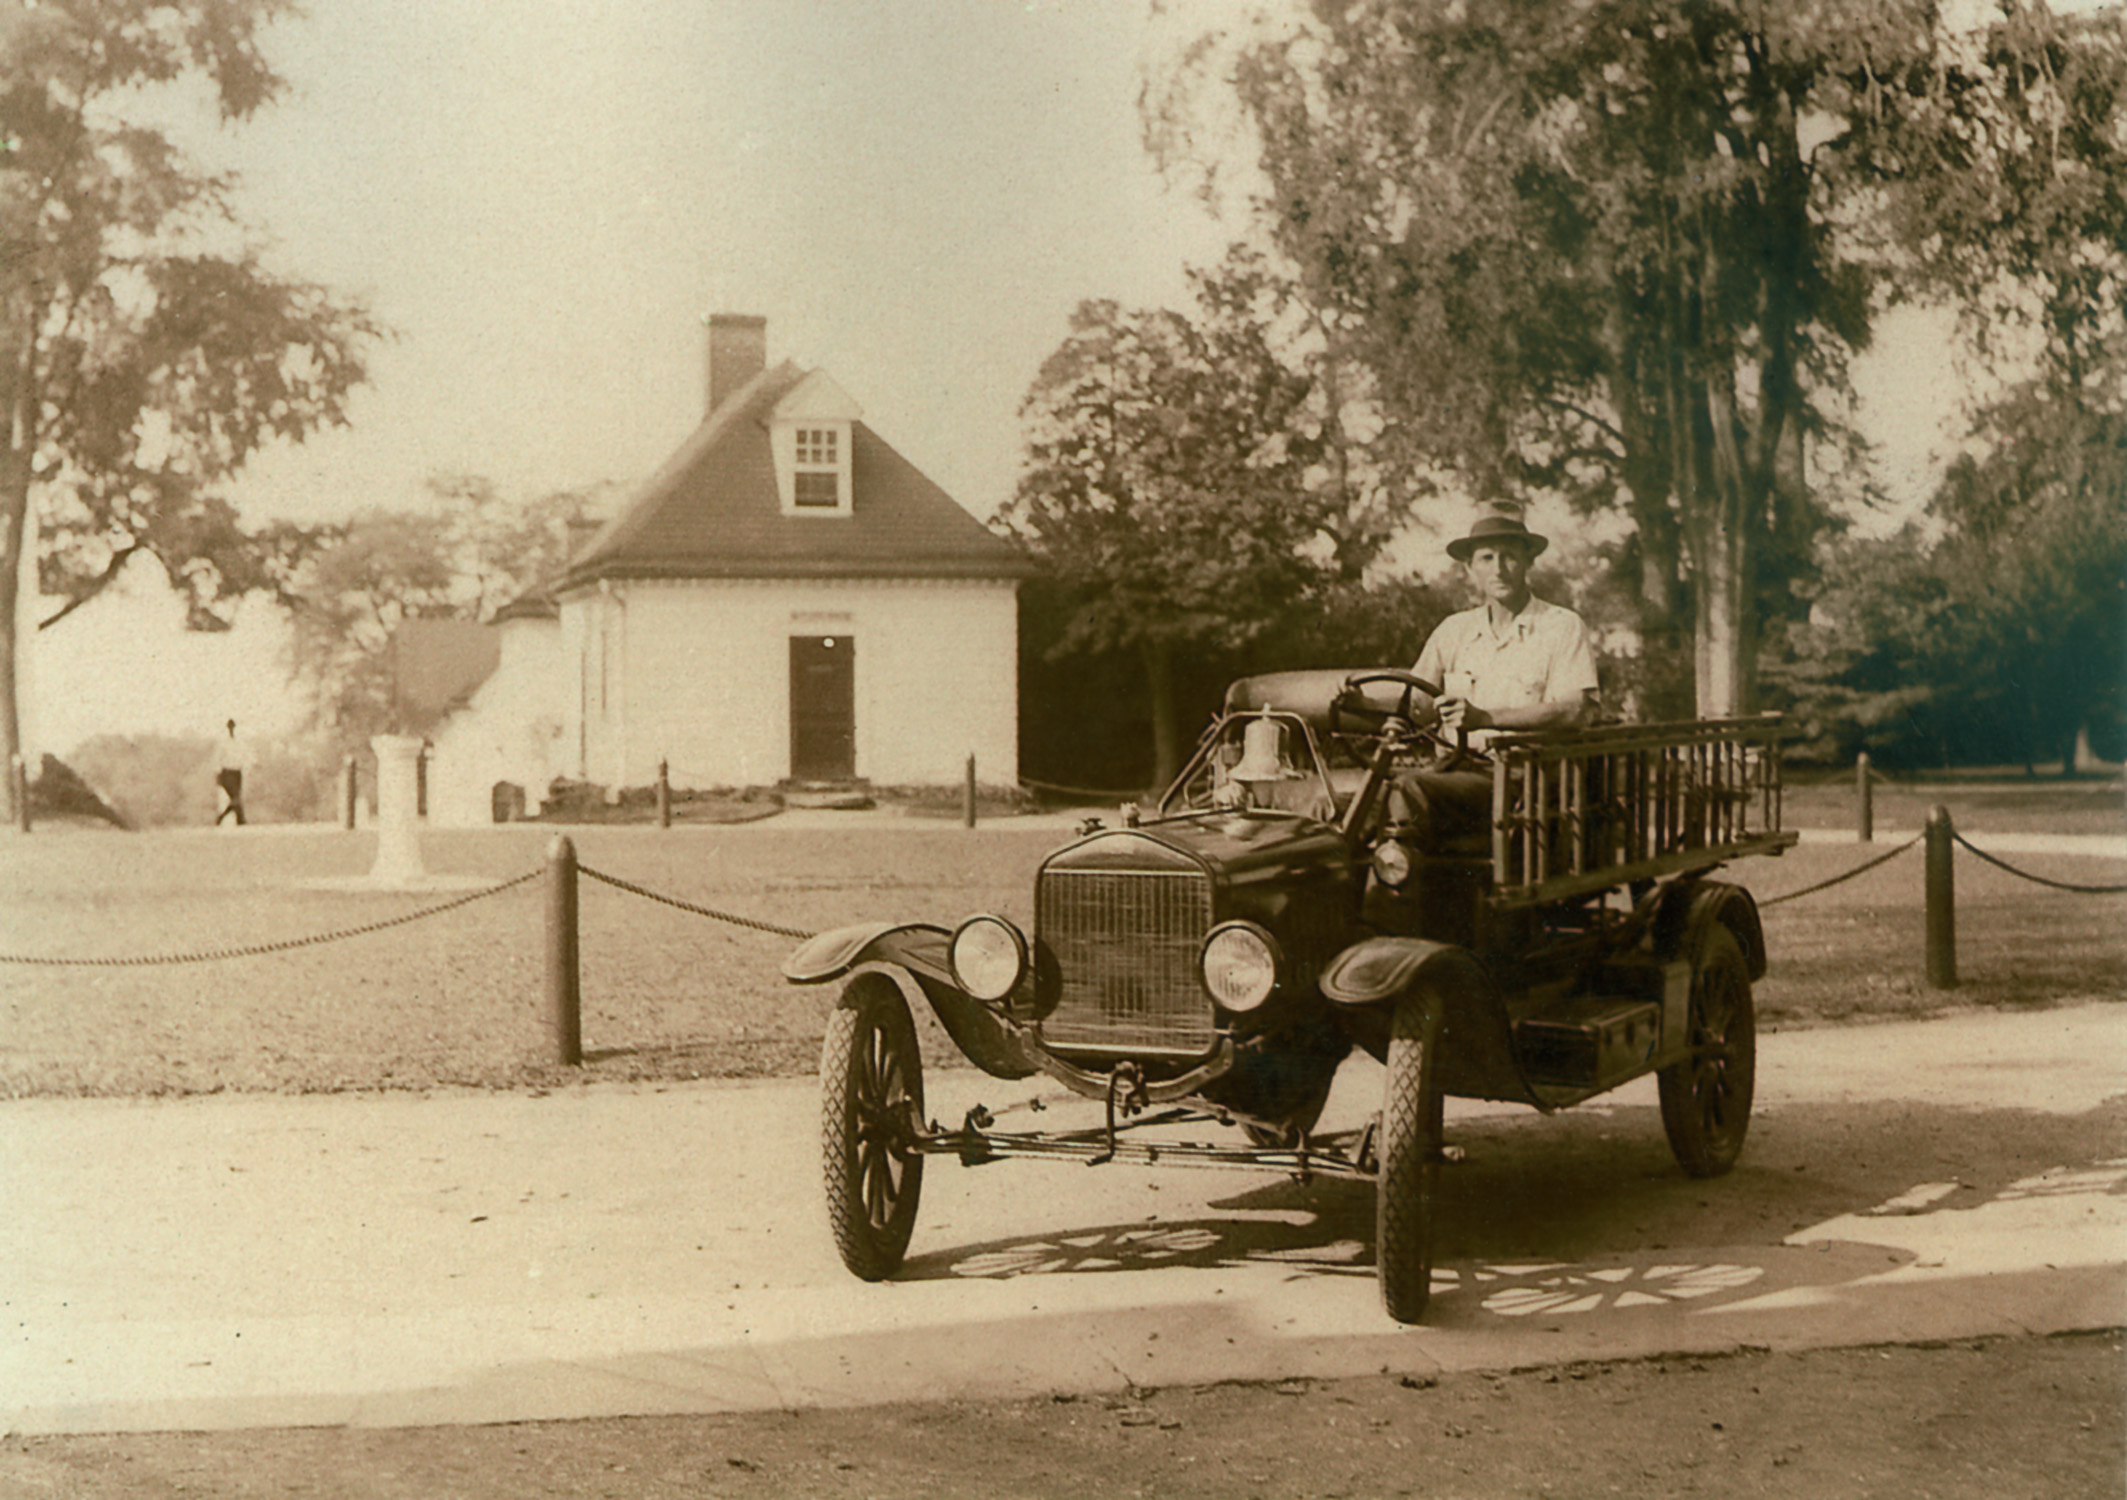 For over 90 years, Ford has been making donations to preserving the history and grounds of Mount Vernon (MVLA)